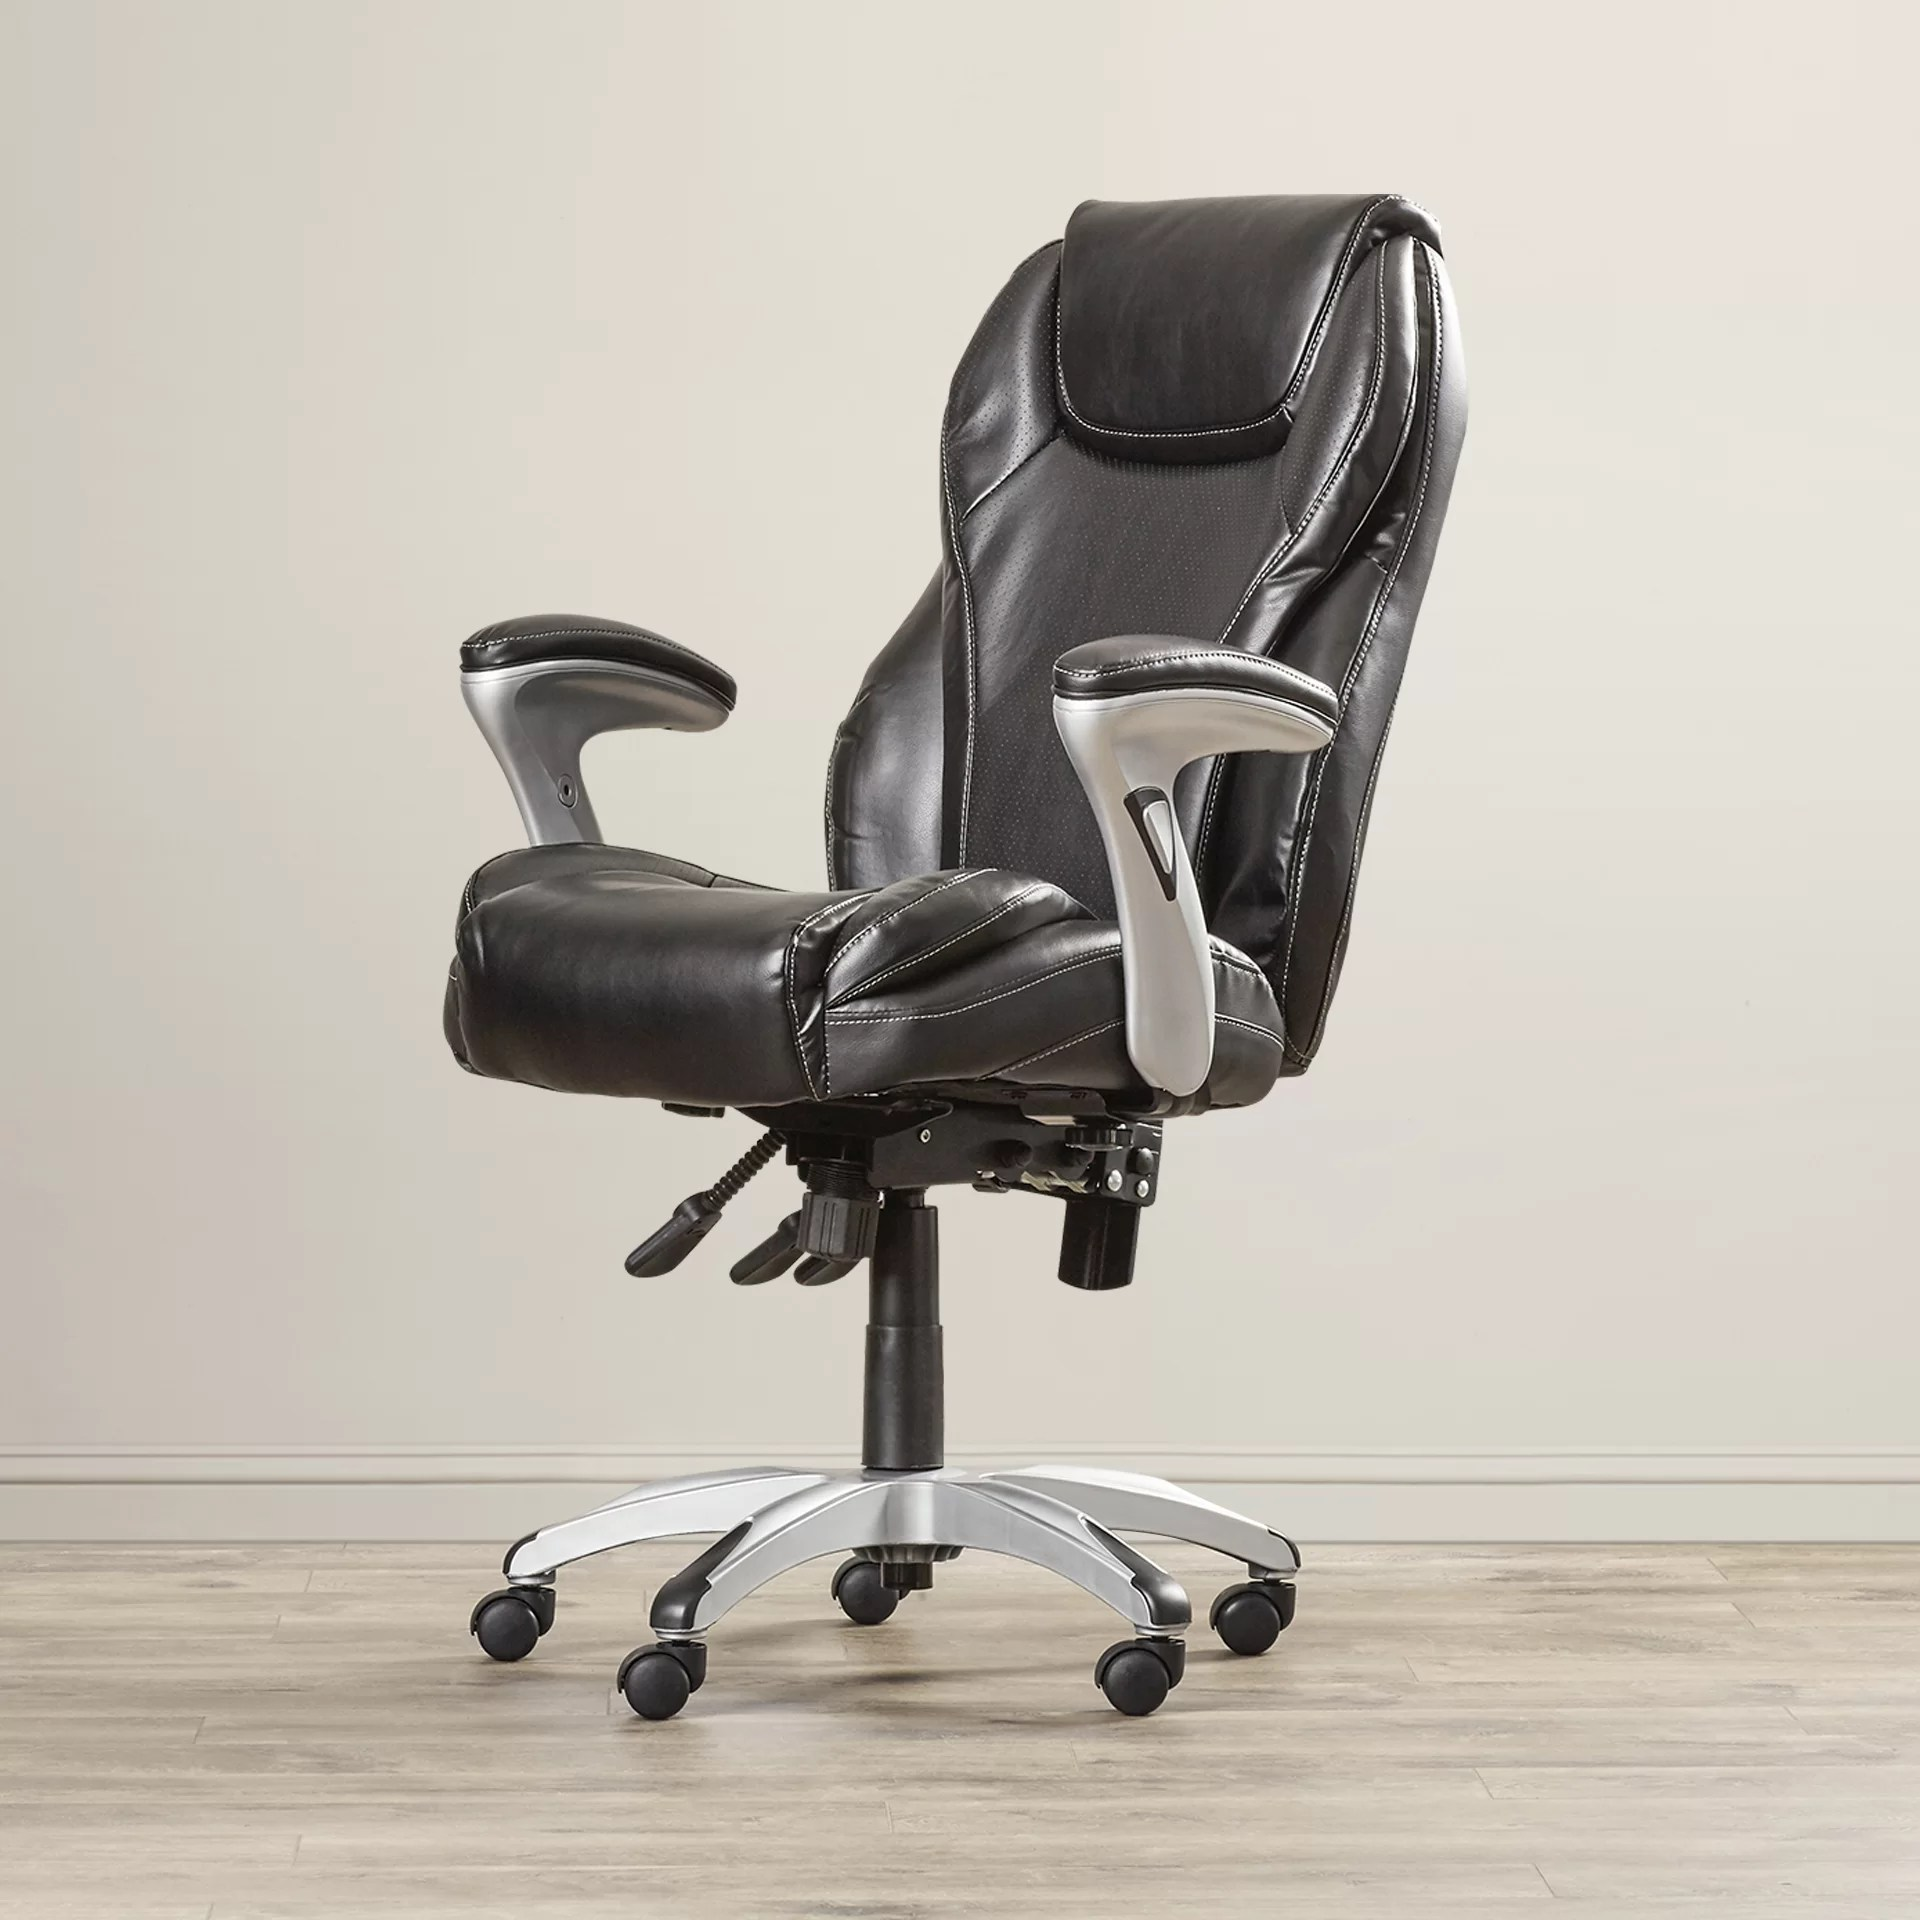 serta office chair warranty claim contemporary at home ergo executive reviews wayfair